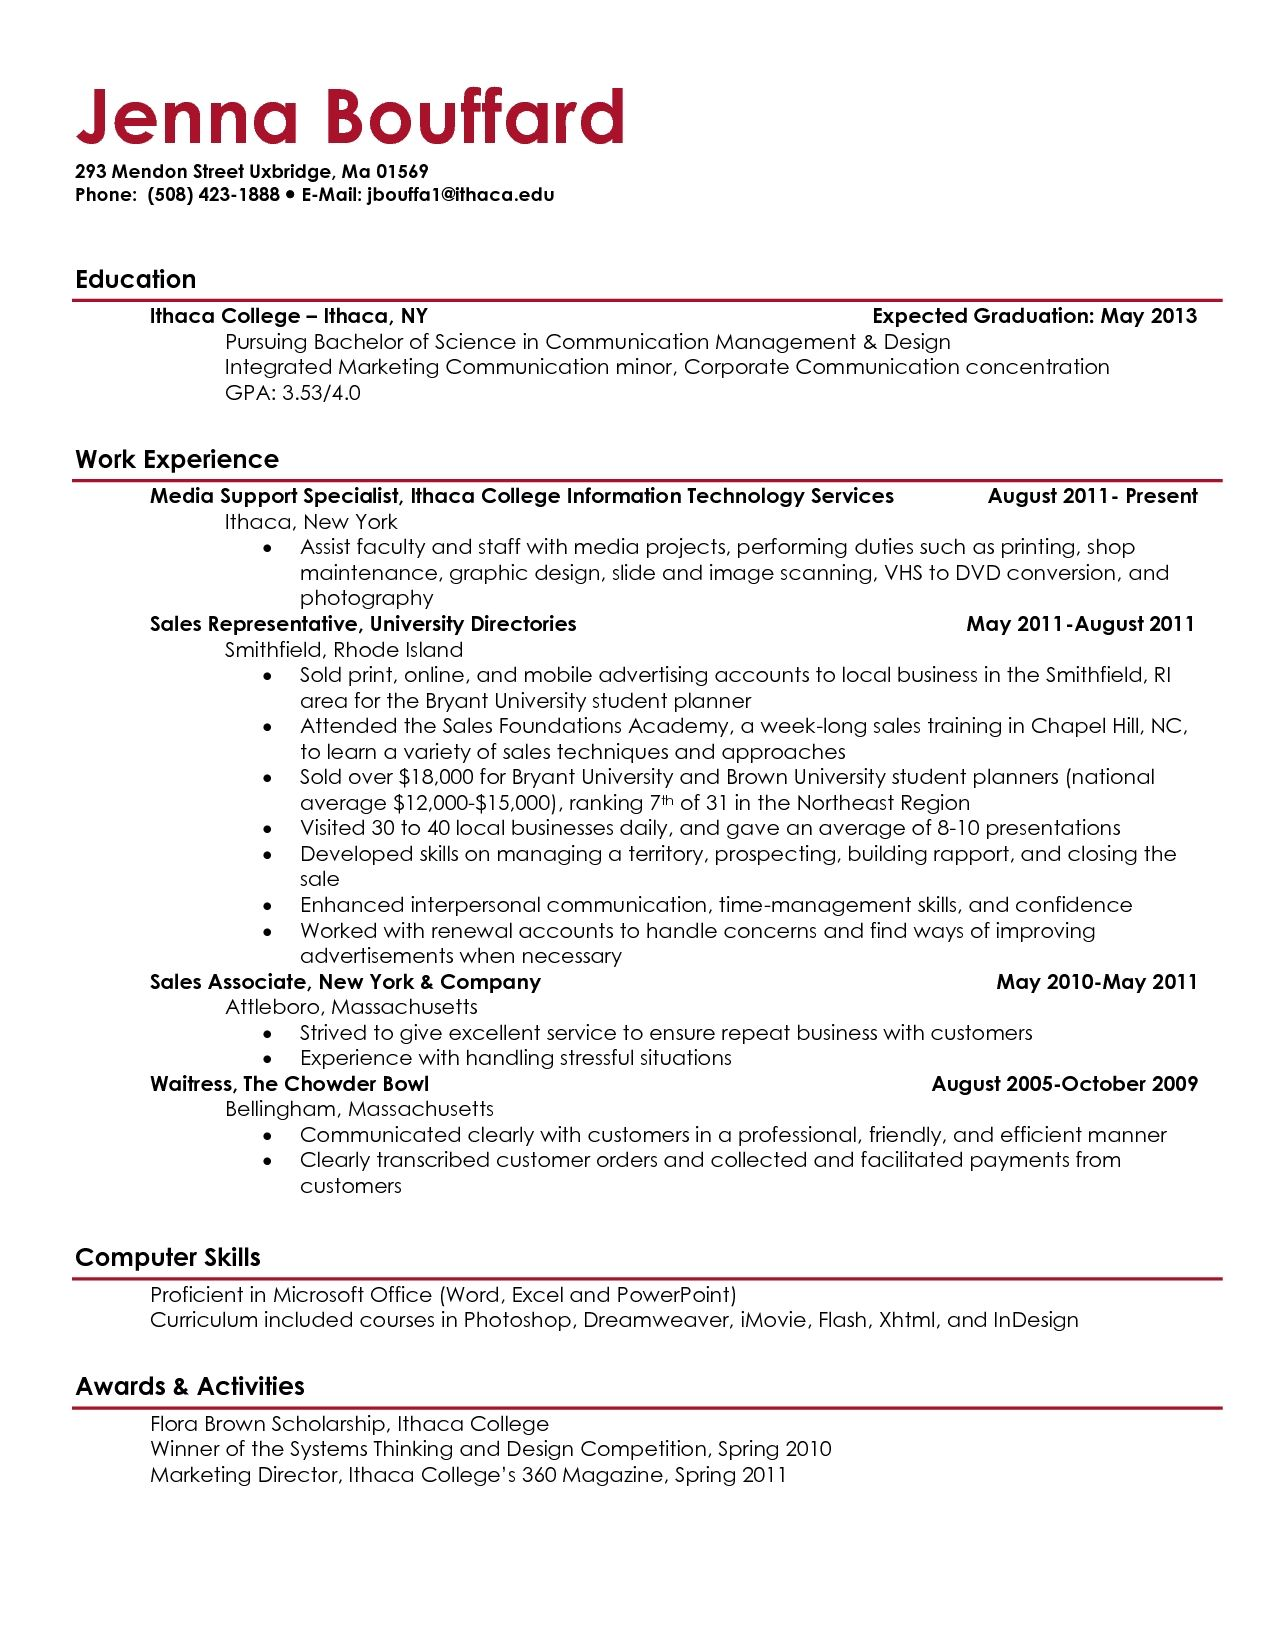 Sample Resume College Graduate Amusing Job Resume Examples For College Students Good Resume Examples For .